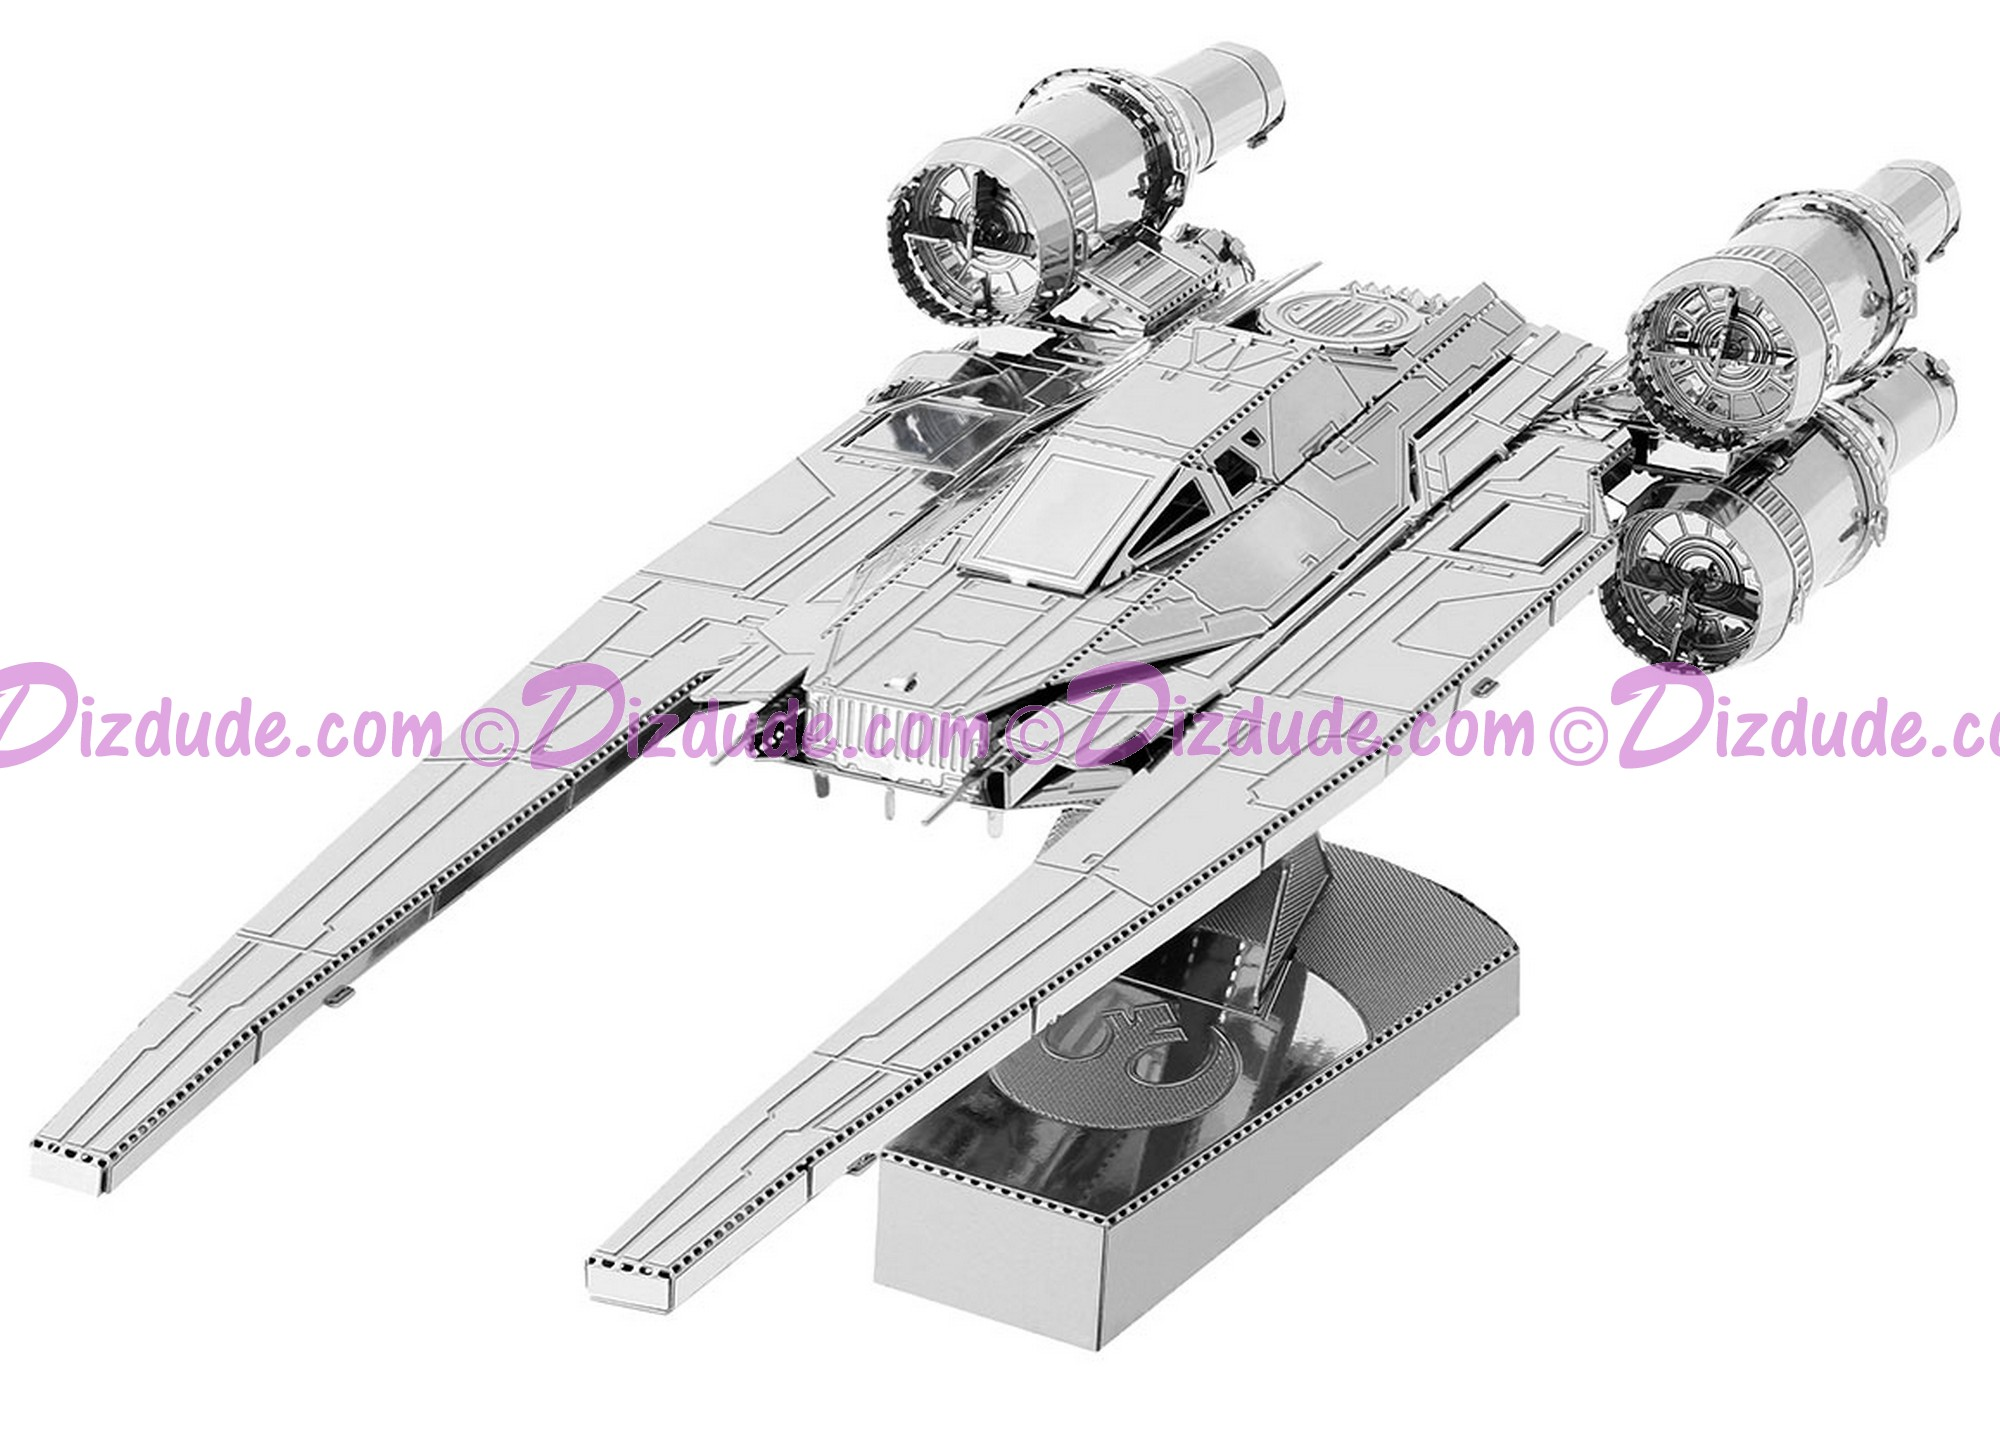 Rogue One UT-60D U-Wing Starfighter 3D Metal Model Kit ~ Disney Star Wars © Dizdude.com